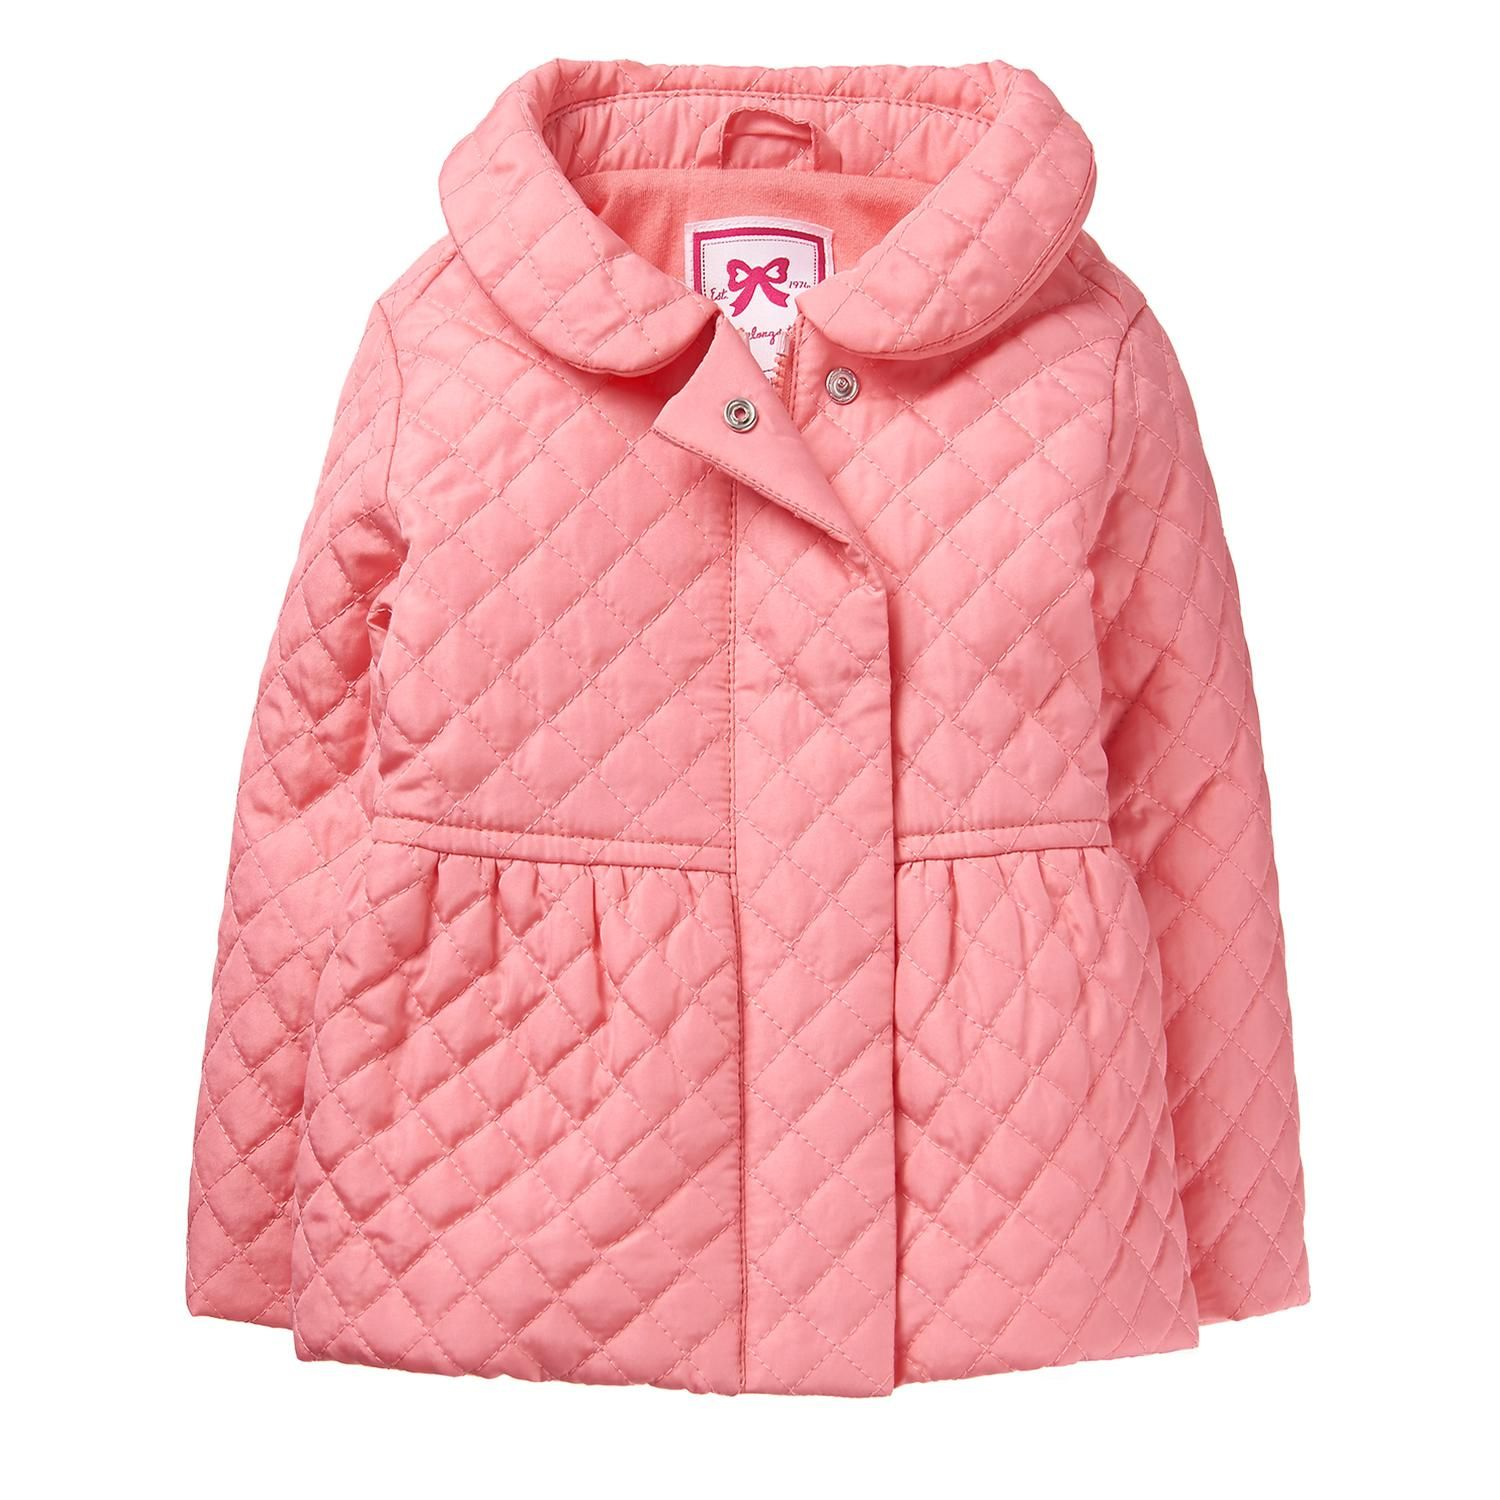 Toddler Girl Coral Quilted Jacket By Gymboree Toddler Jacket Quilted Jacket Jackets